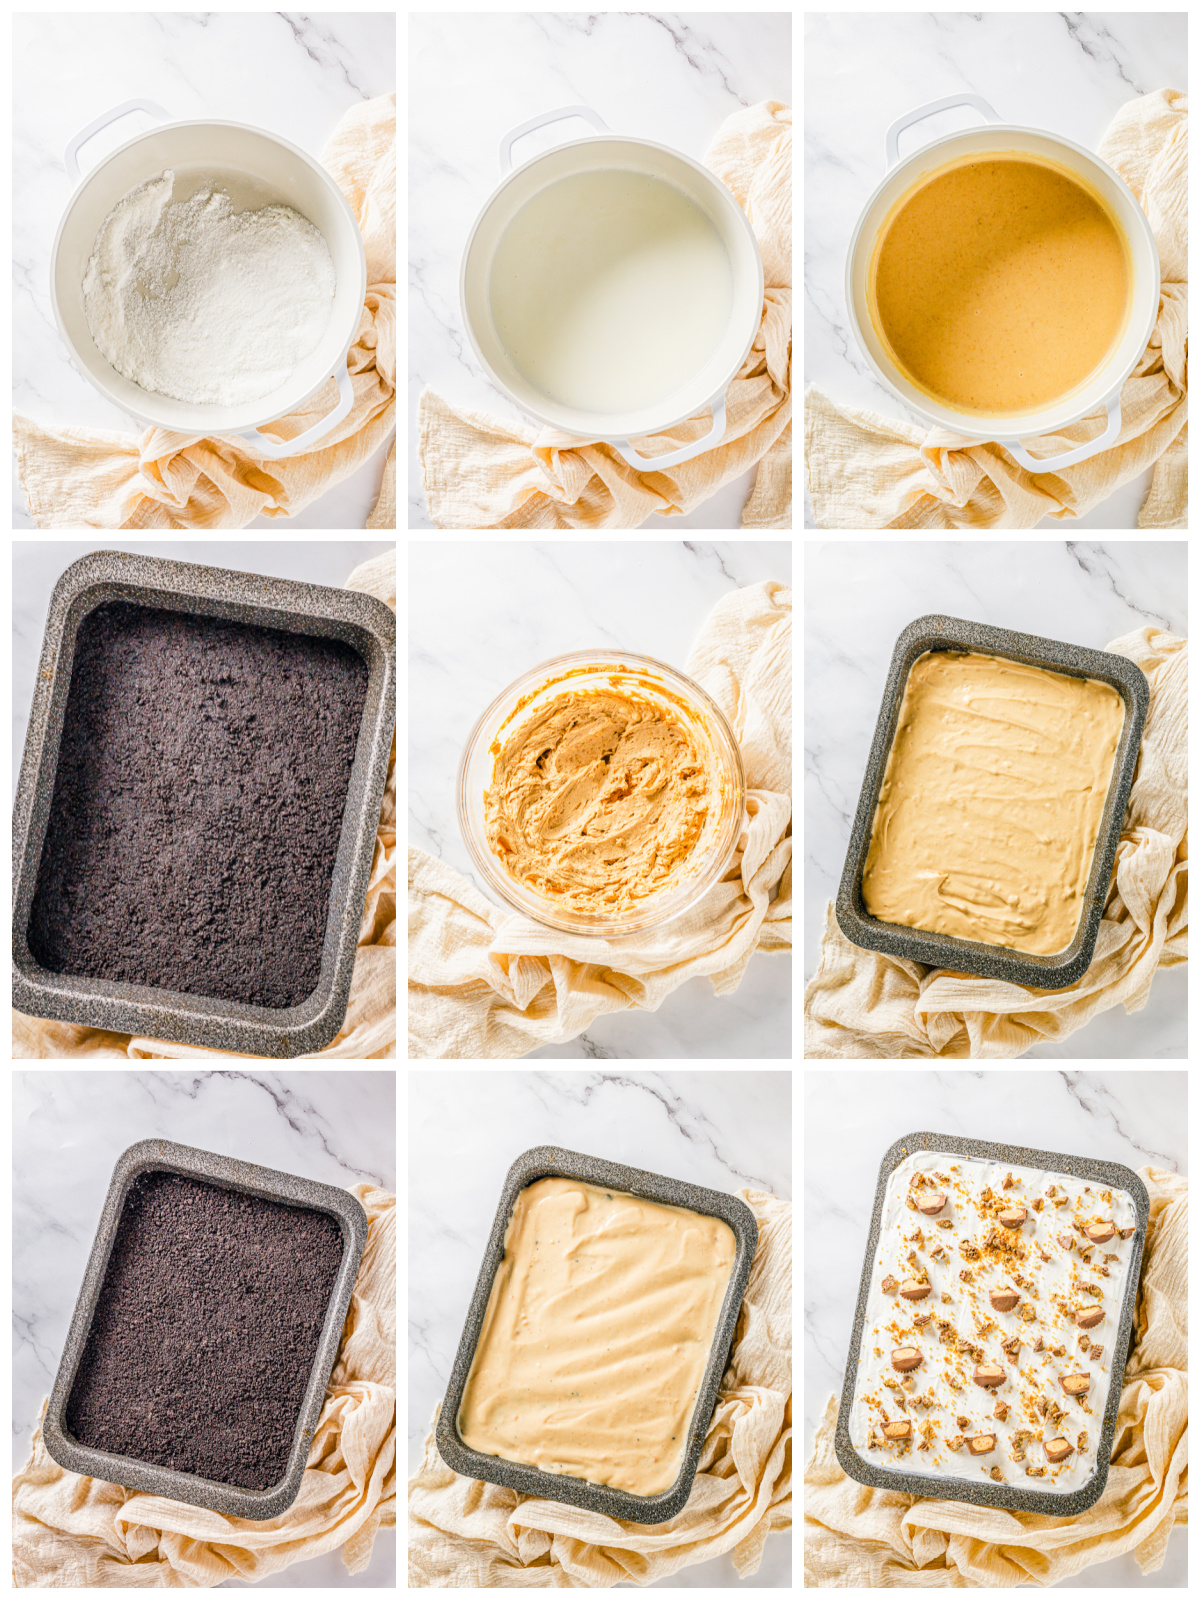 Step by step photos on how to make Peanut Butter Lasagna.